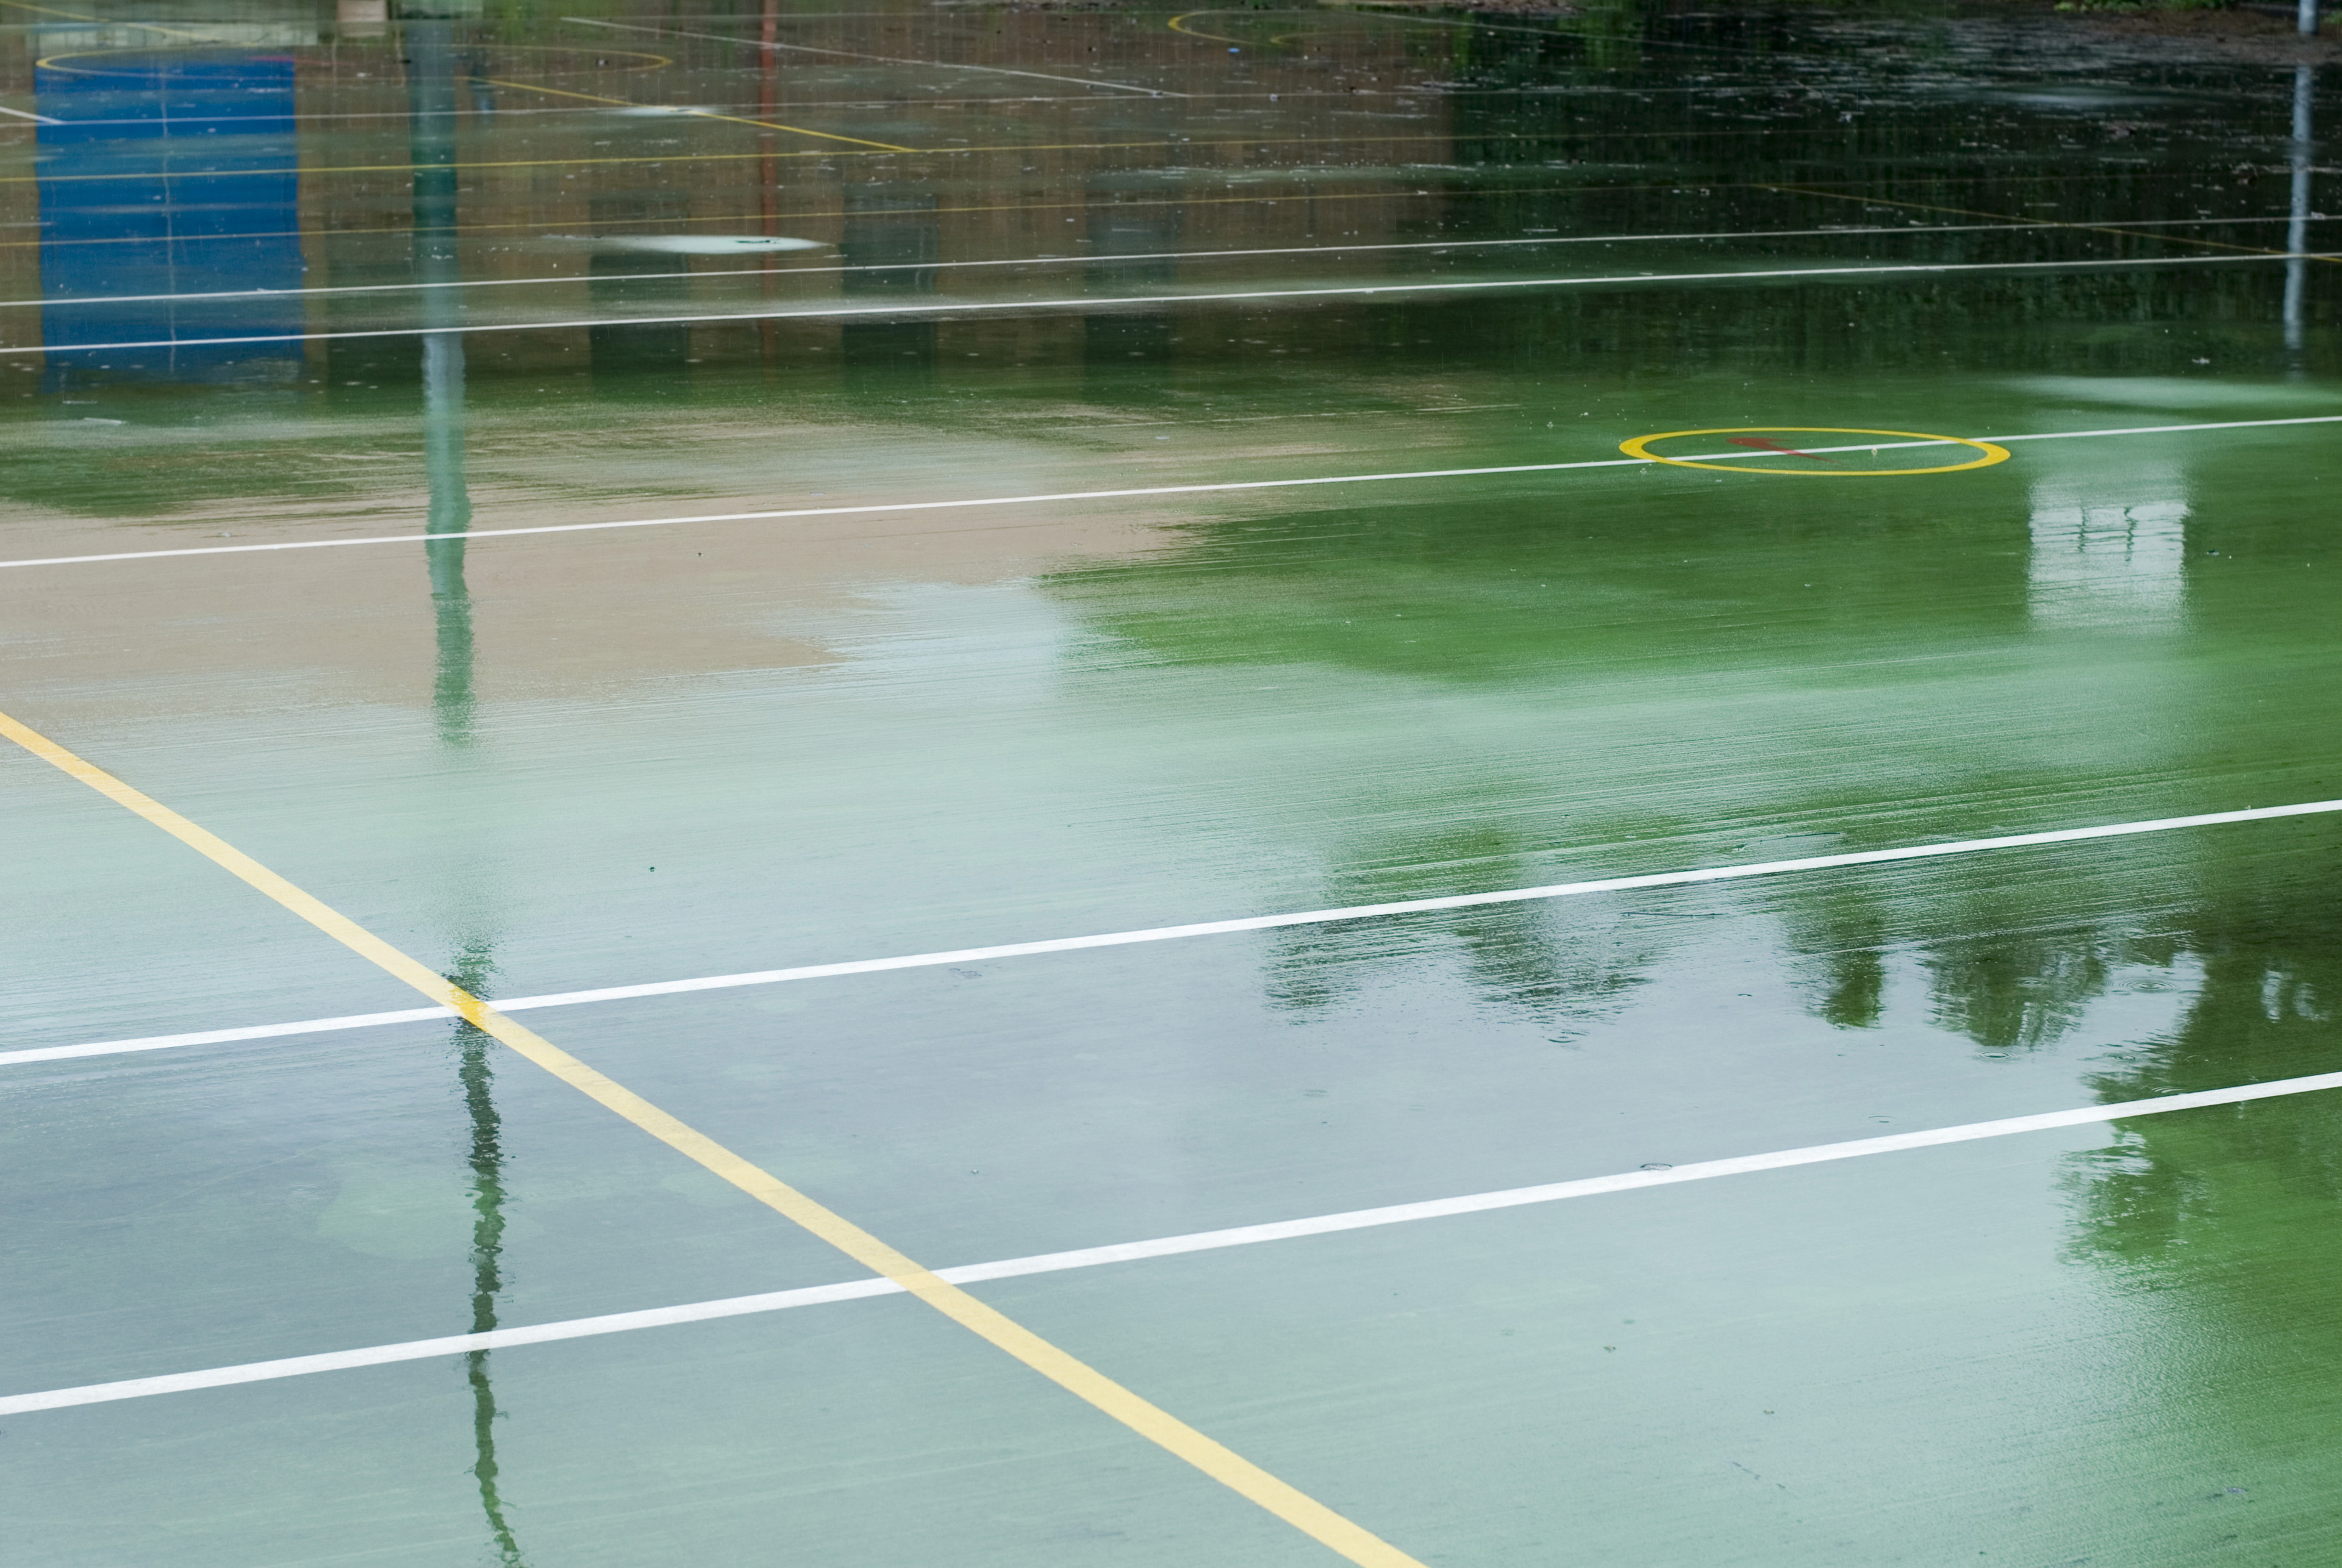 Wet outdoor all-weather sports court with yellow and white lines on a green surface reflecting surrounding trees on the surface of the water